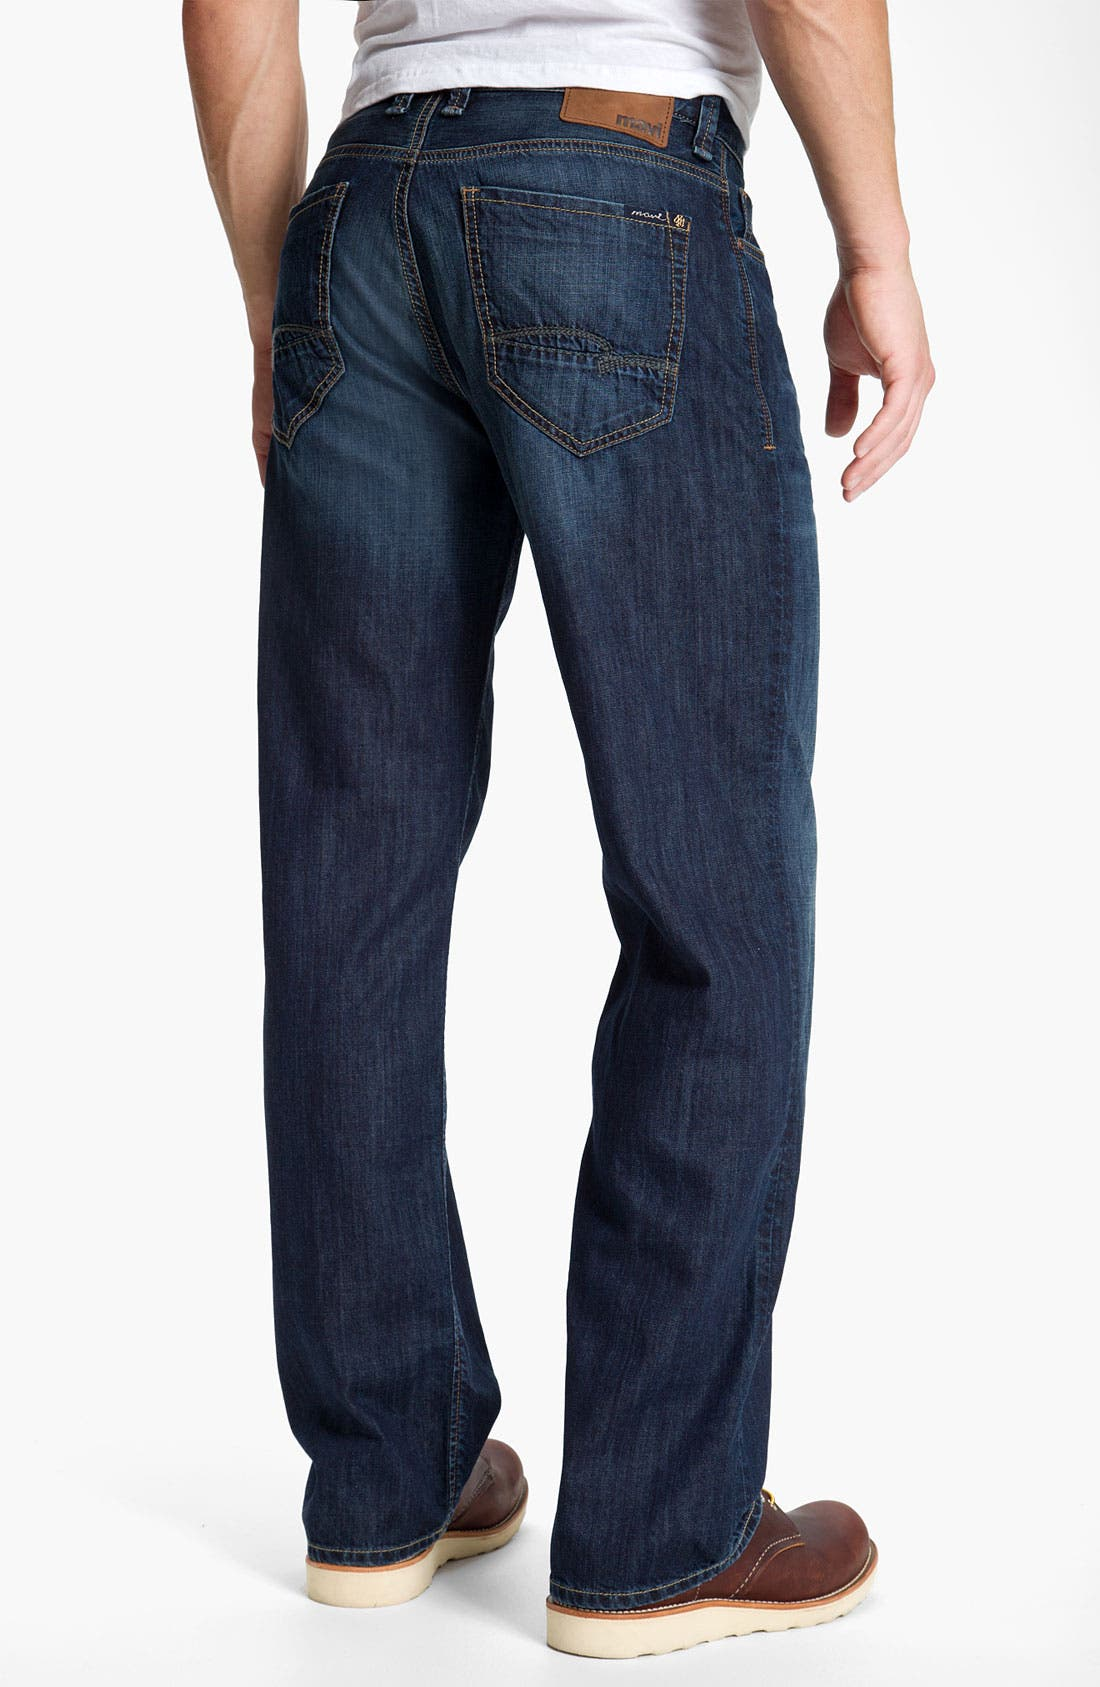 Alternate Image 1 Selected - Mavi Jeans 'Max' Relaxed Fit Jeans (Dark Spring)